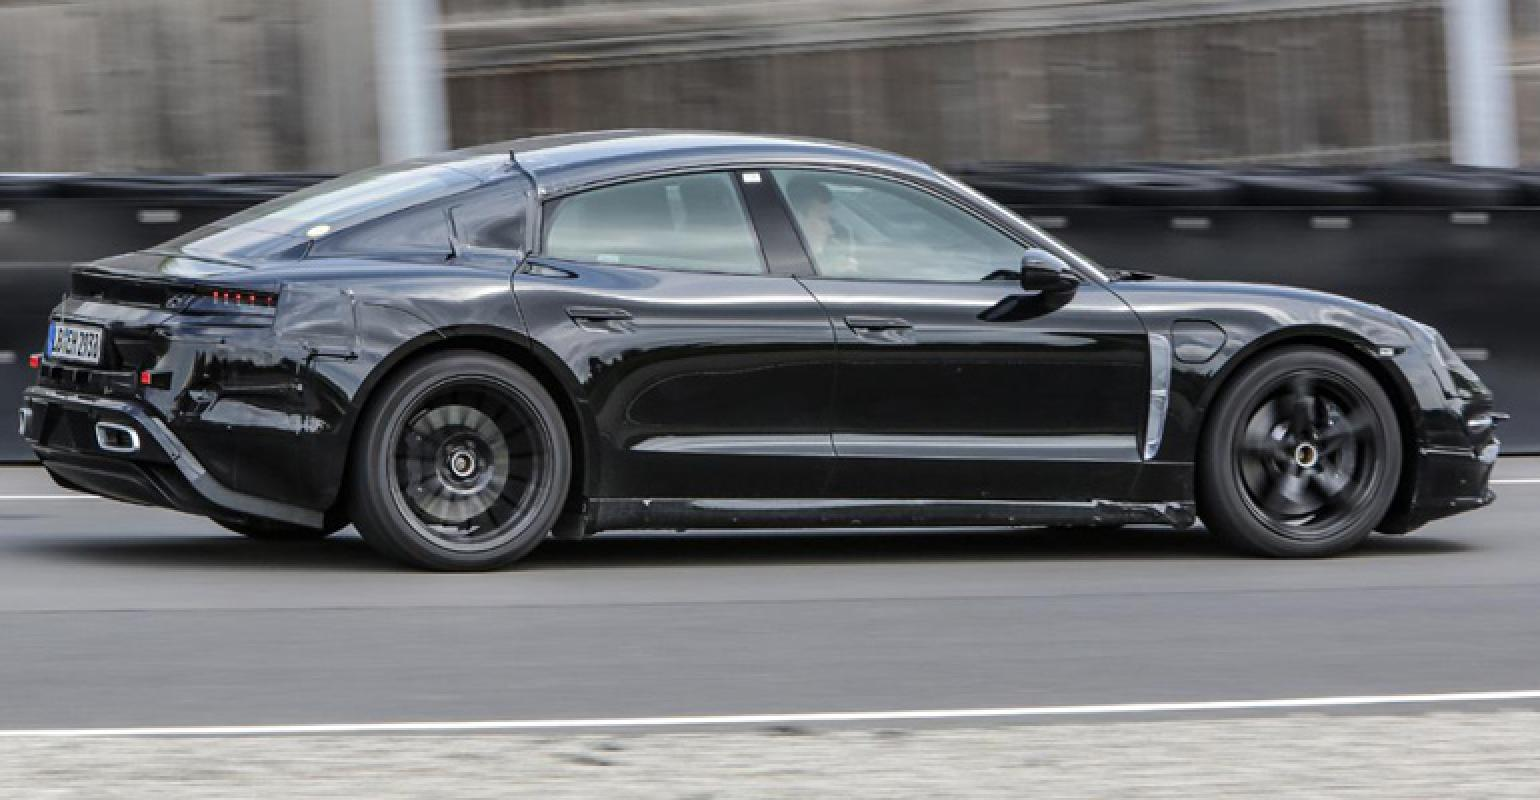 Porsche Claims Taycan Has 310 Mile Range Takes 80 Battery Charge In 15